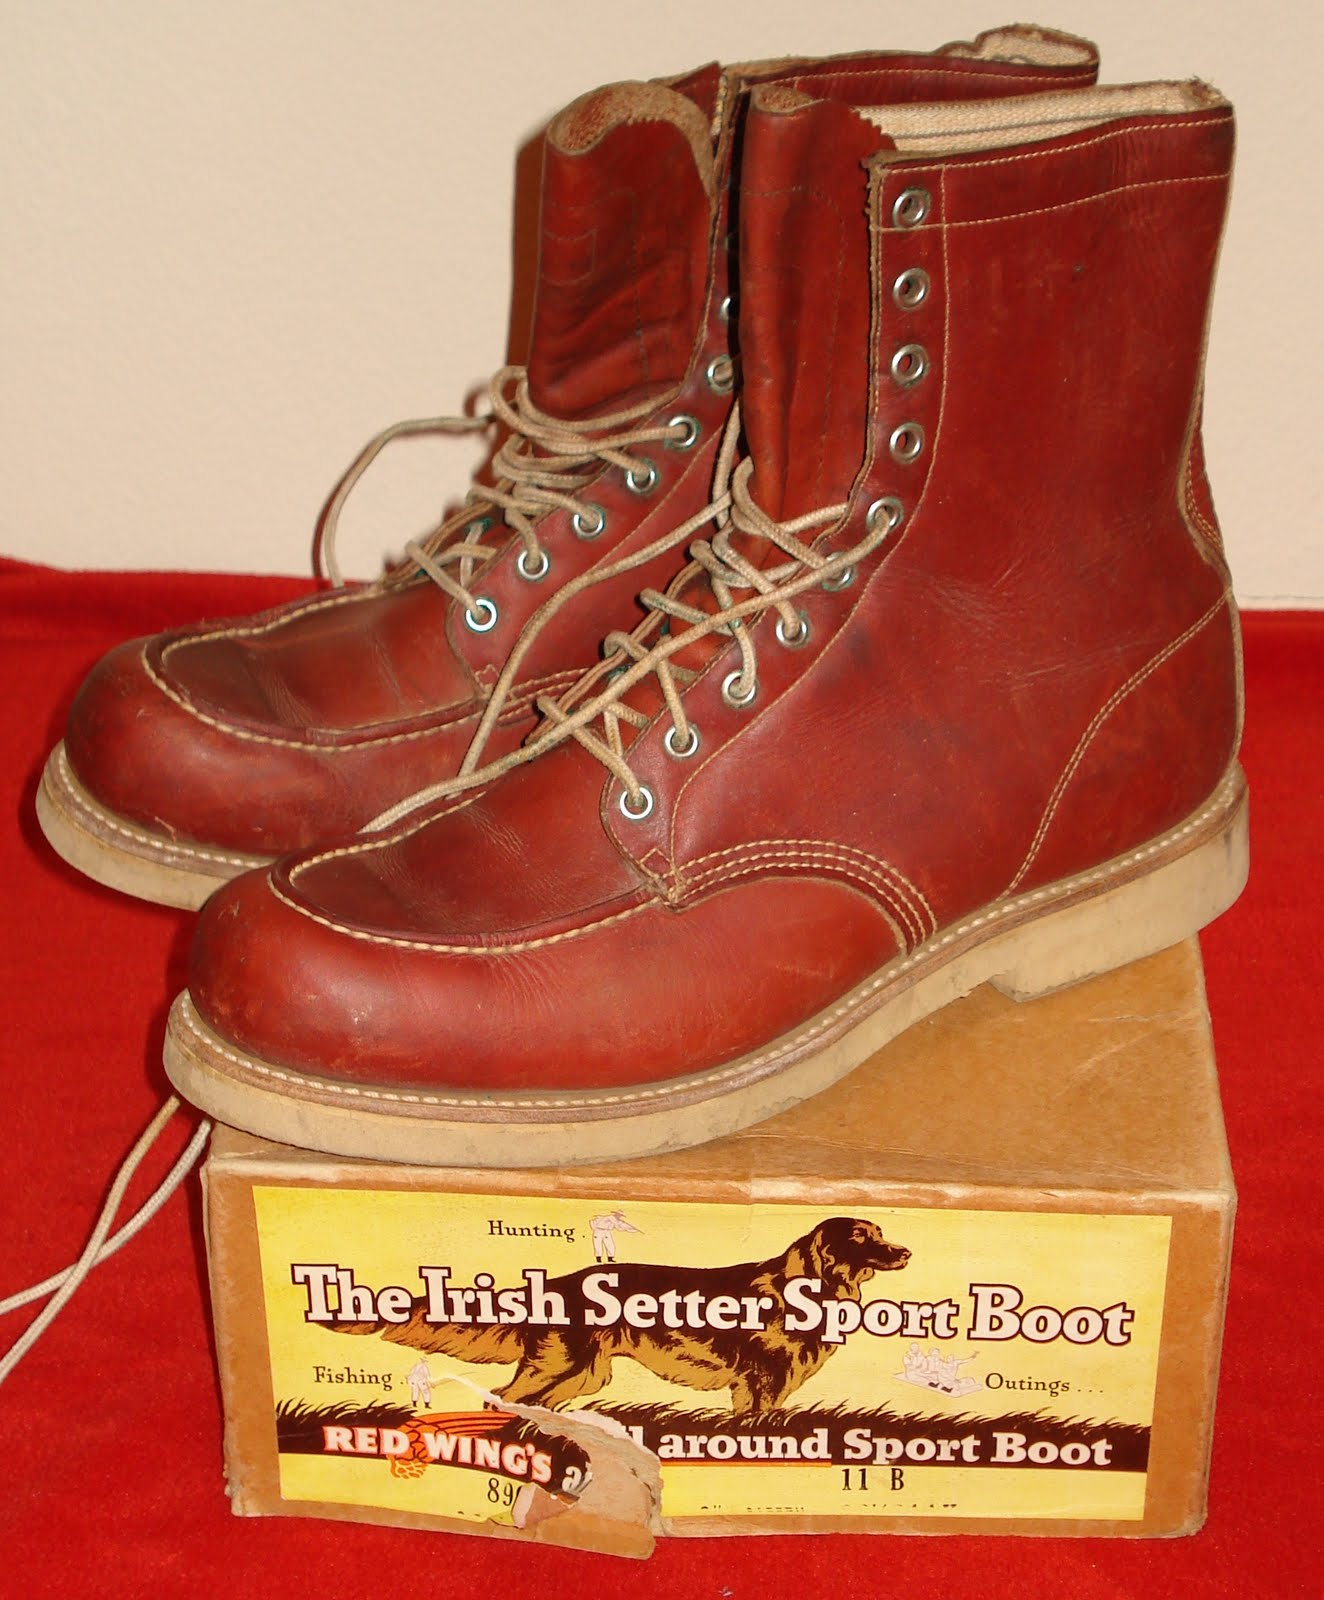 ccfa0f1f542b6 Nostalgia on Wheels: 1950's Red Wing Irish Setter Sport Boots